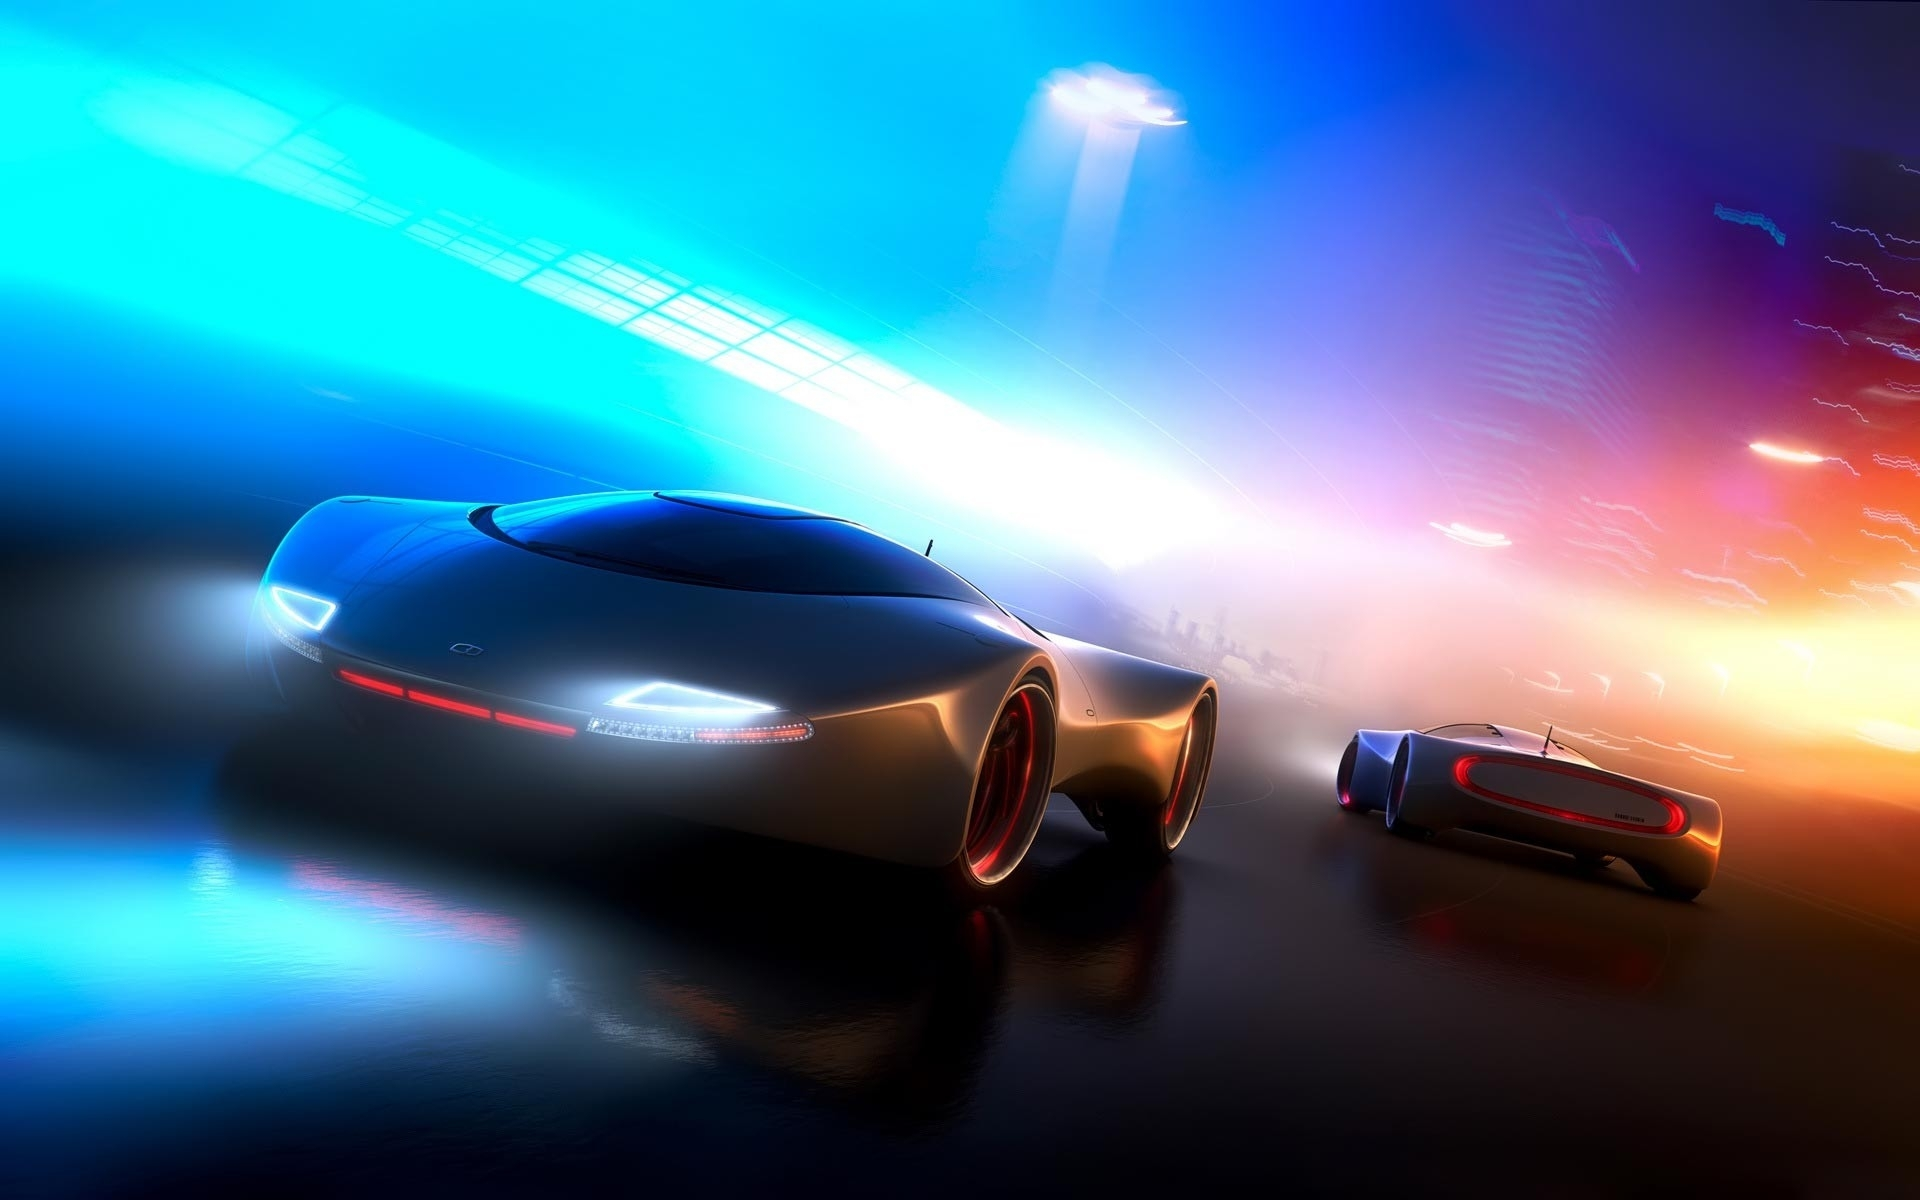 free live wallpaper of cars for windows 7 hd backgrounds windowslive